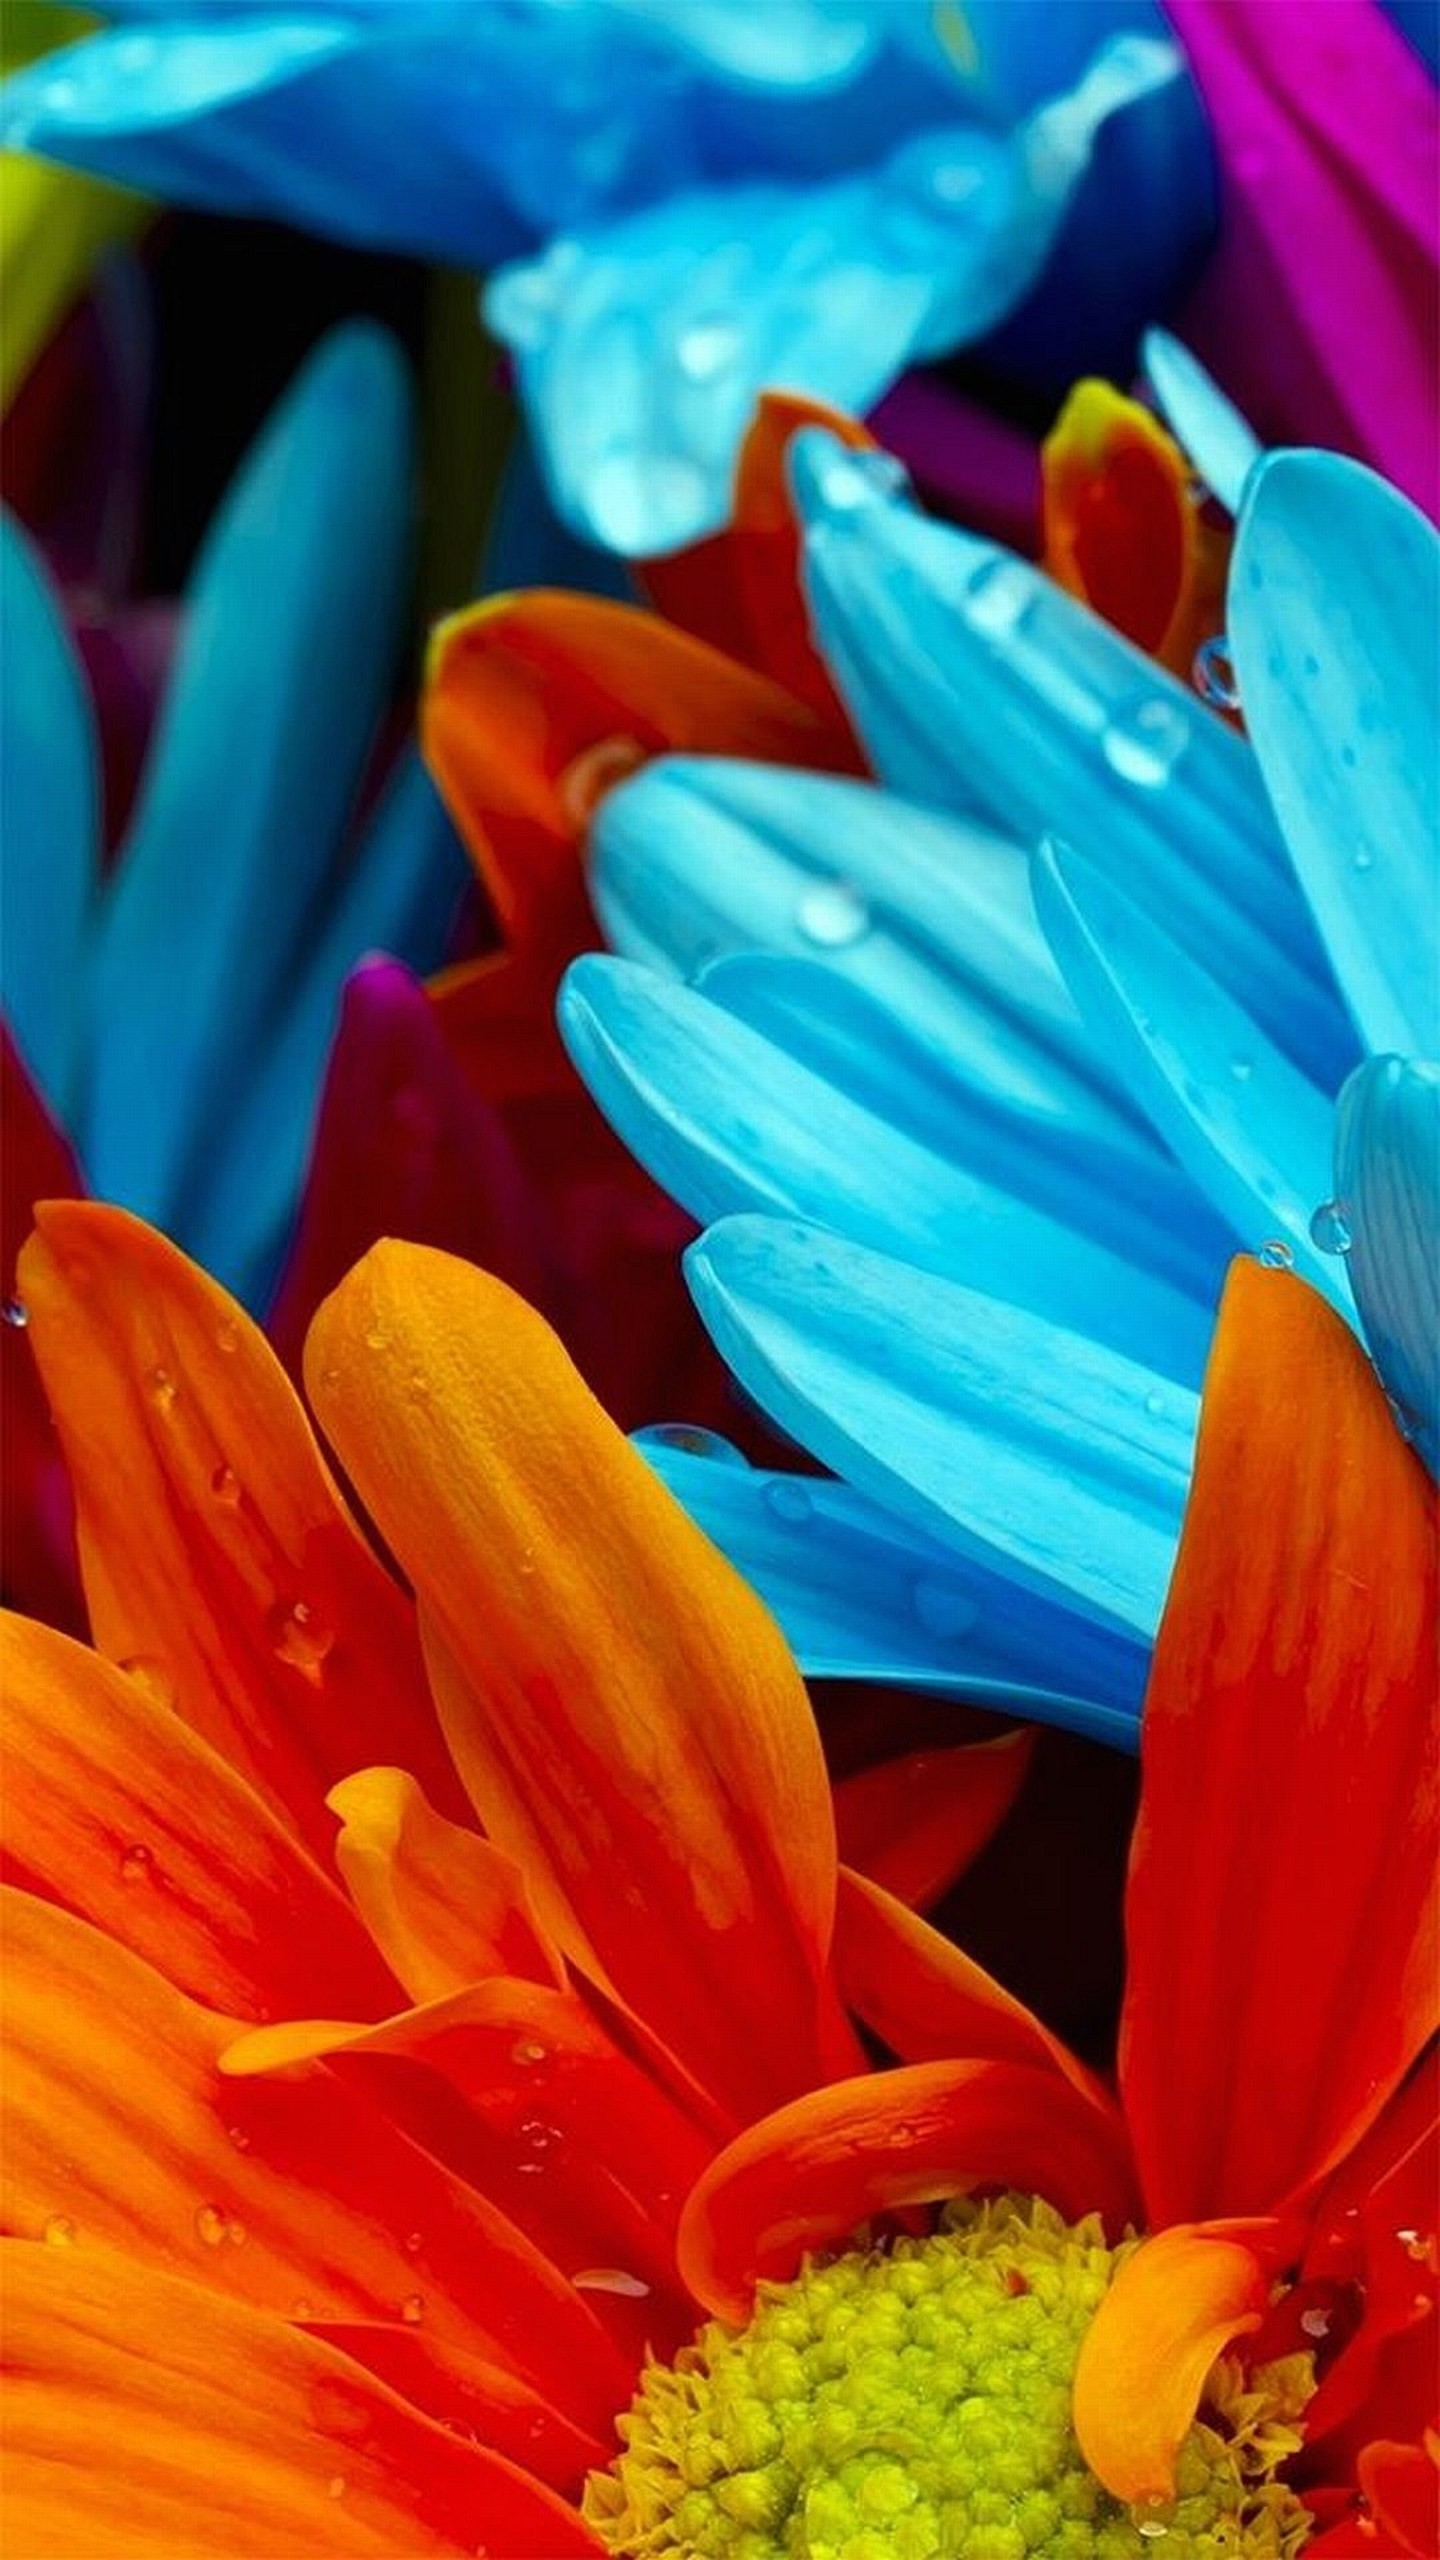 Colorful Flowers Wallpaper Galaxy S6, LG G4, HTC One M9